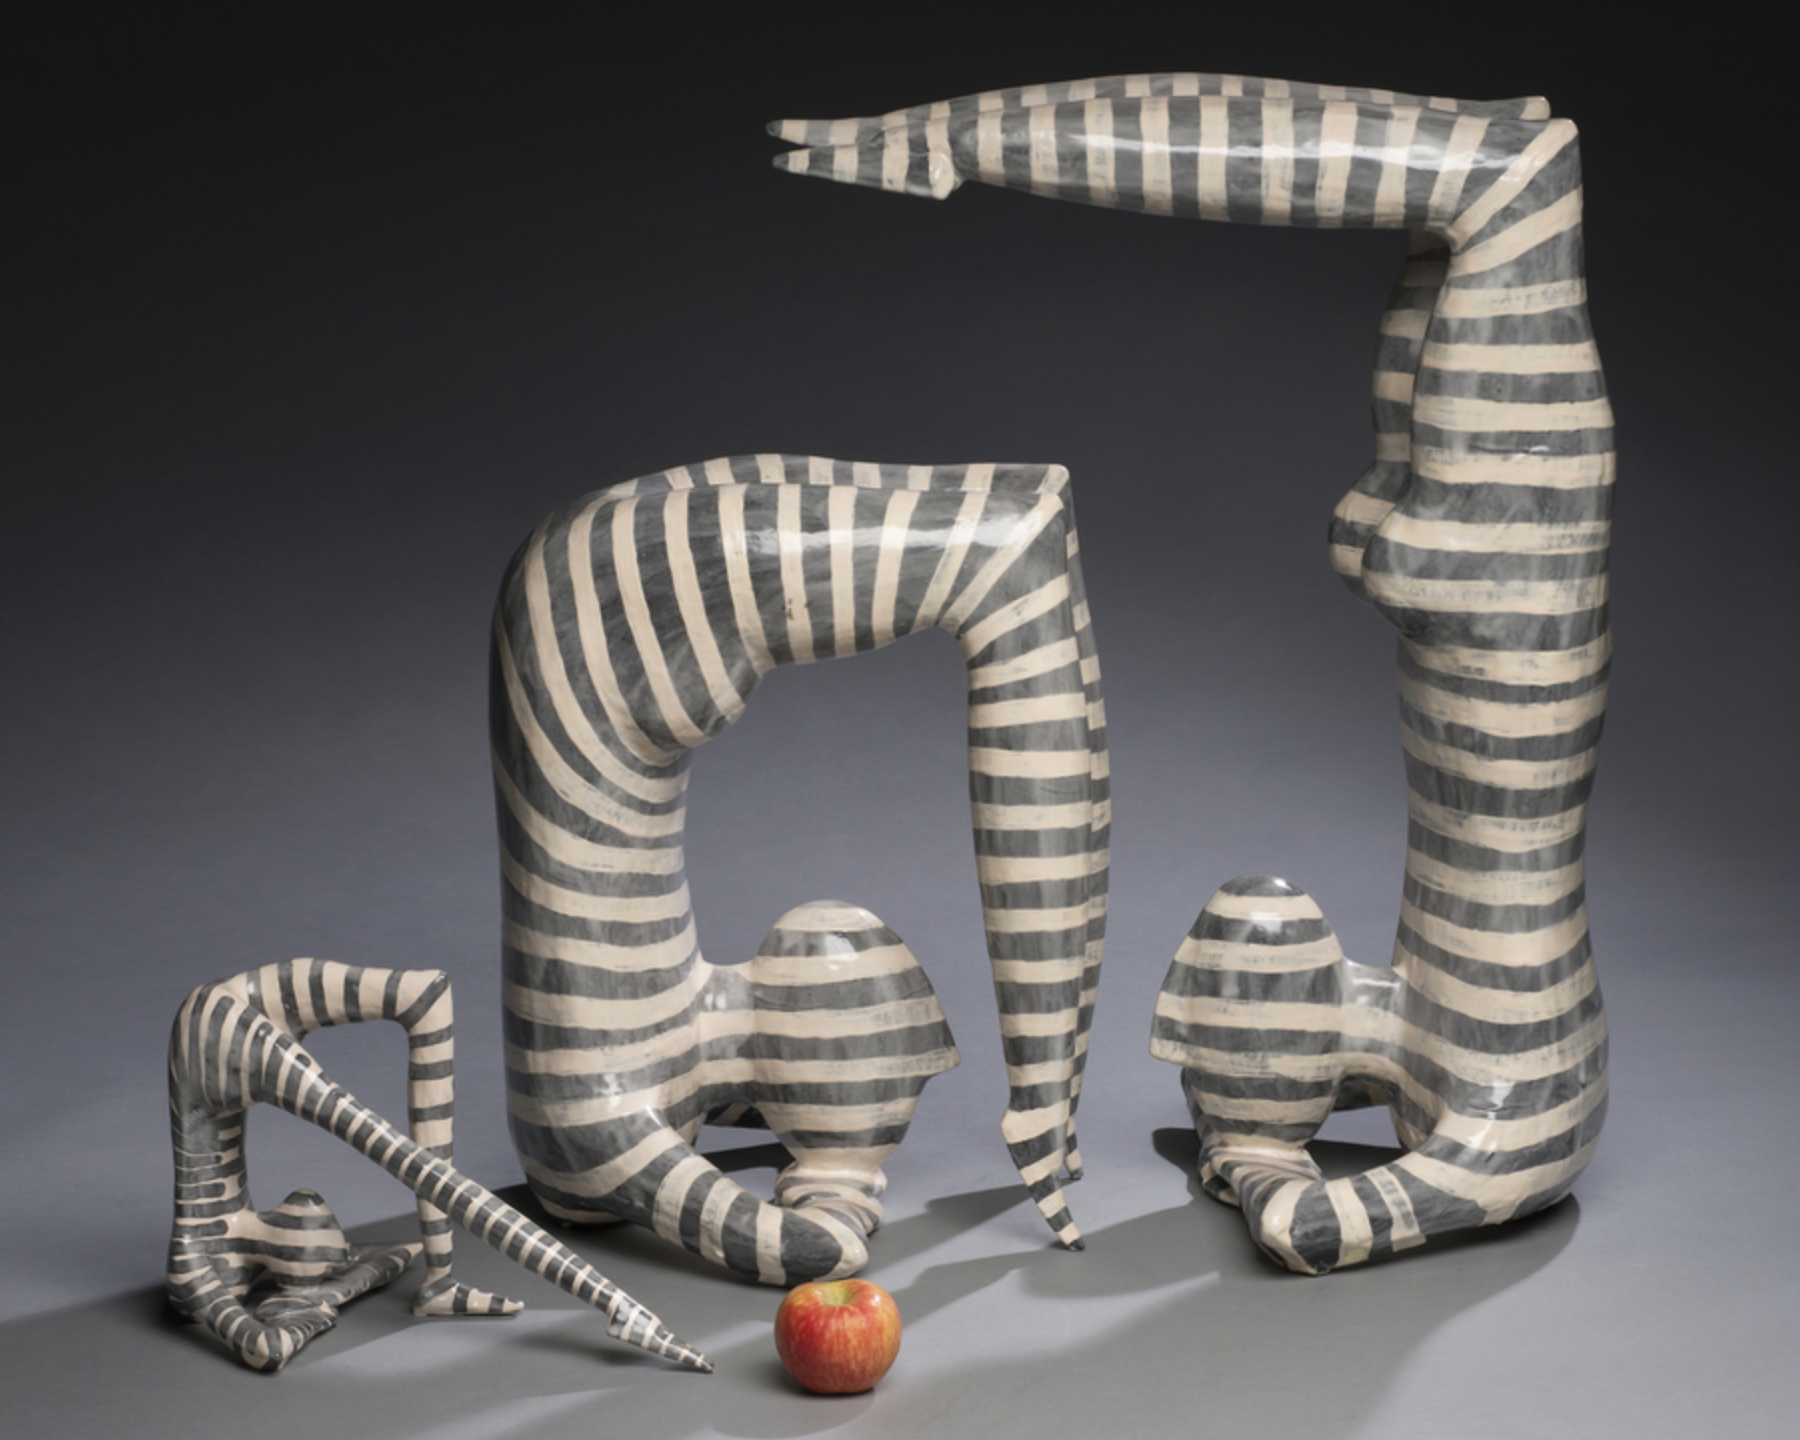 Jack Charney - http://www.jackcharney.comHandformed polychromatic functional and sculptural ceramic art created using a series of slumped and humped forms that are manipulated assembled and multifired for desired effect and glaze density